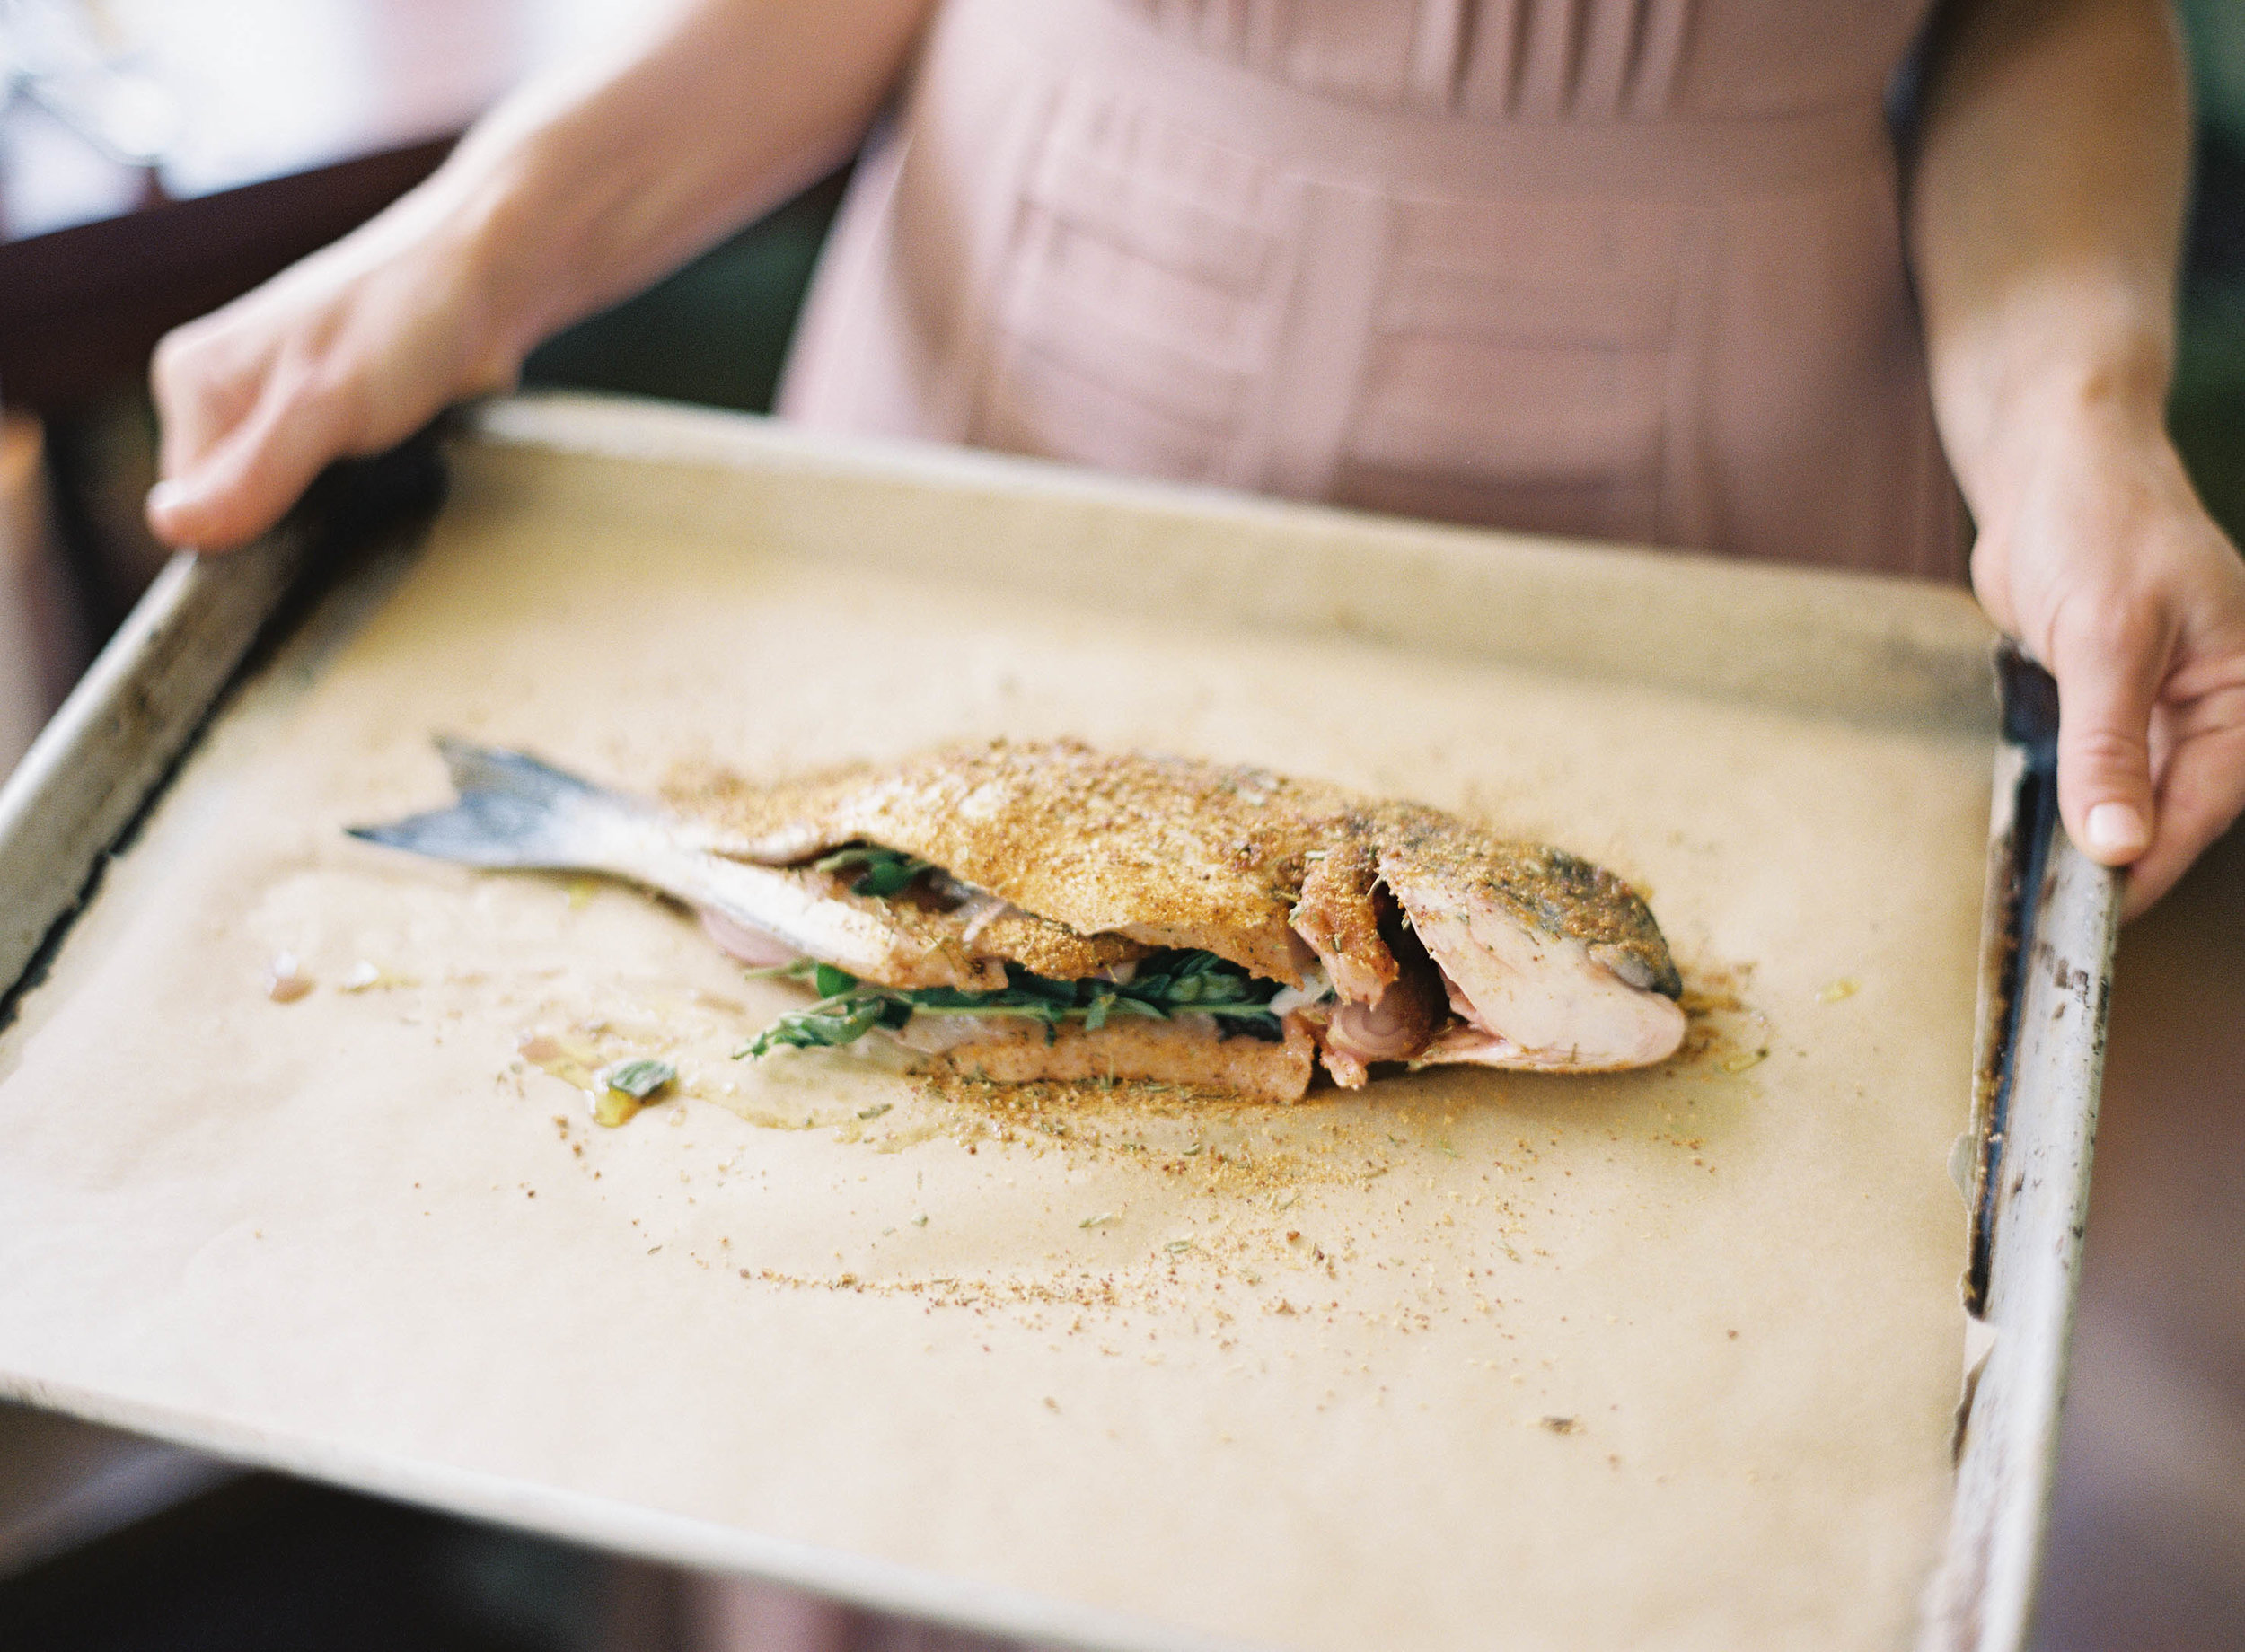 3. - Add flavor. Seasoned your fish with olive oil, oregano, rosemary, salt and pepper and let it marinate, covered for an hour in the fridge. Toss your vegetables with the same mixture of oil and spices.